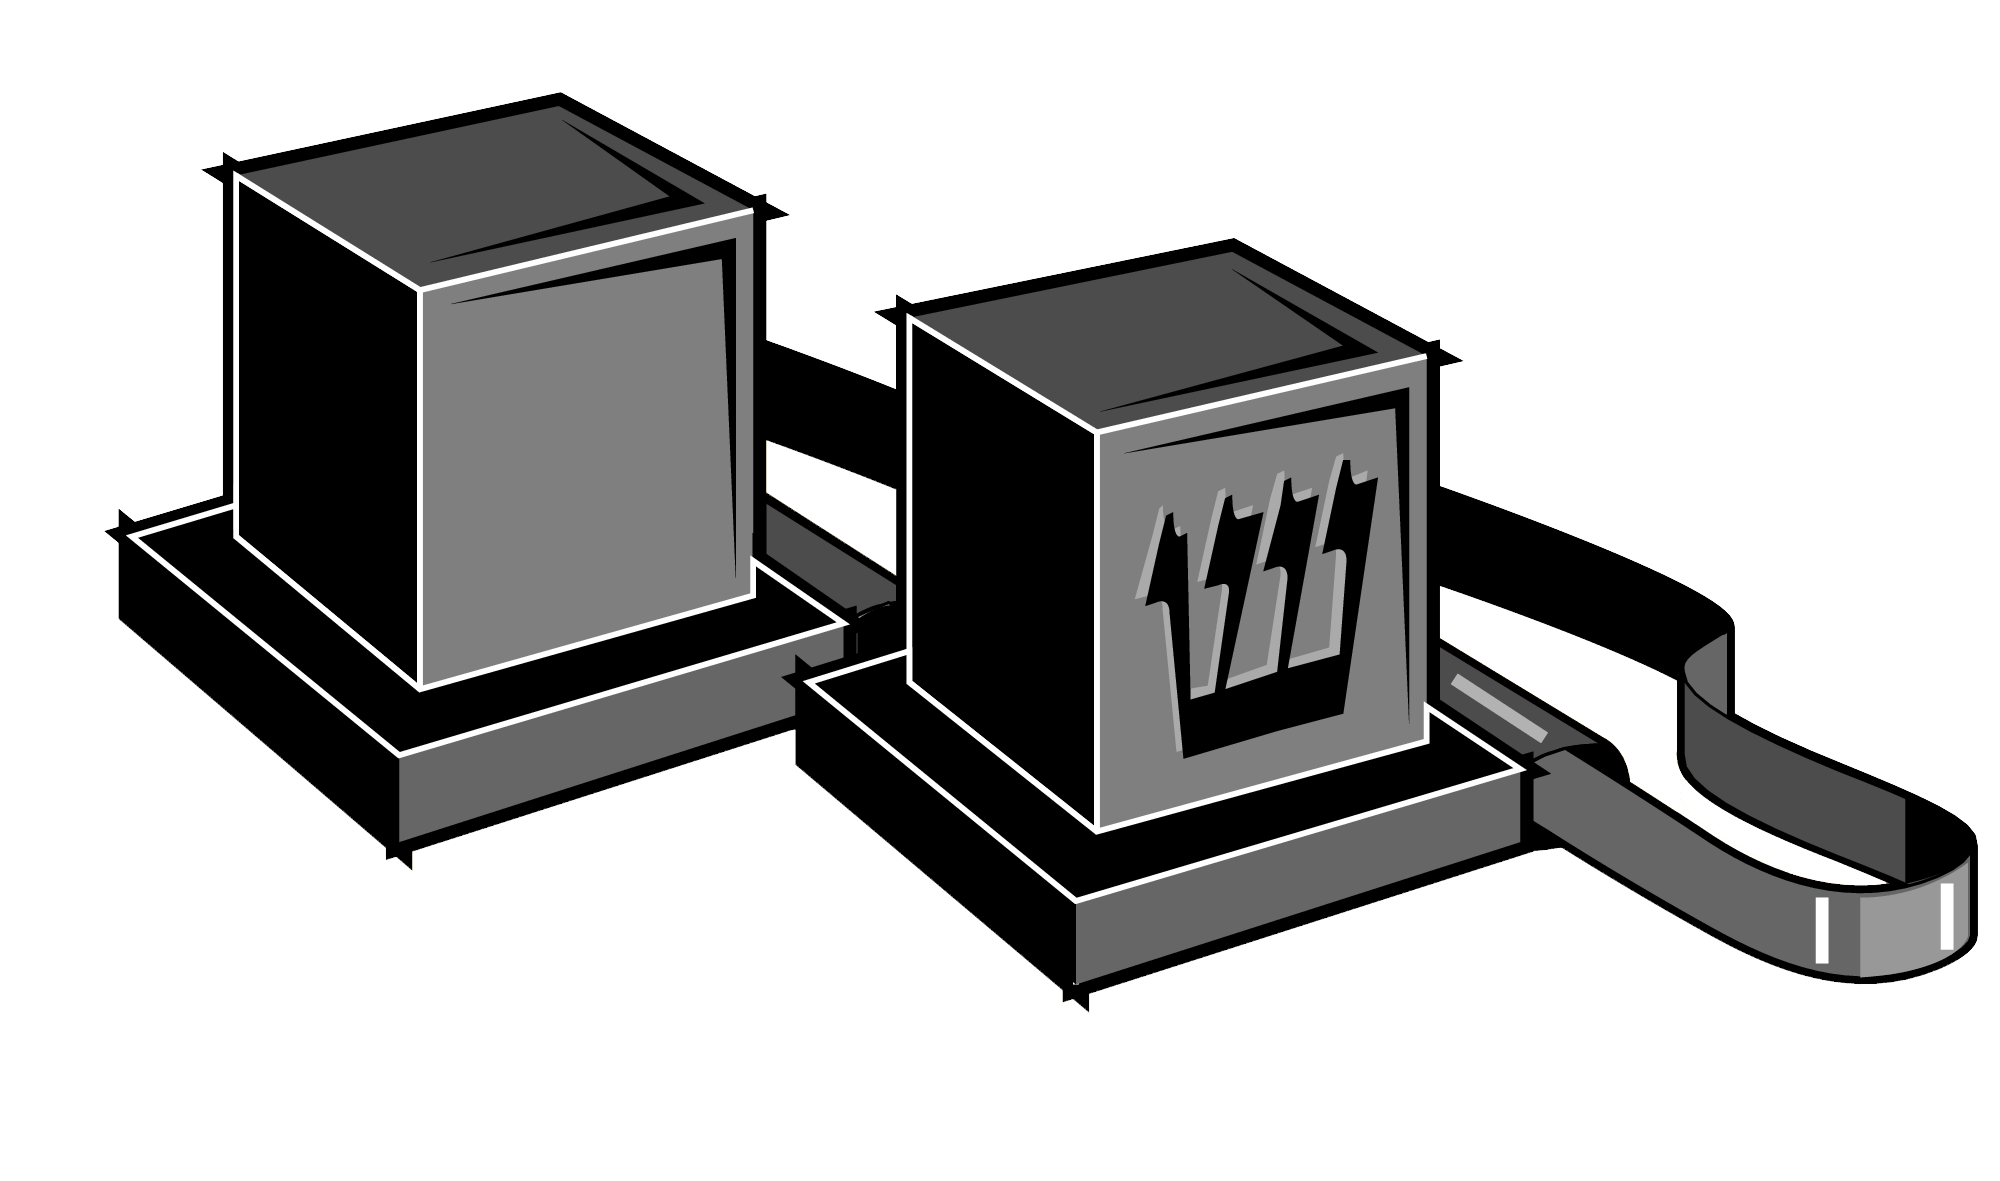 Tefillin Png & Free Tefillin.png Transparent Images #2099.